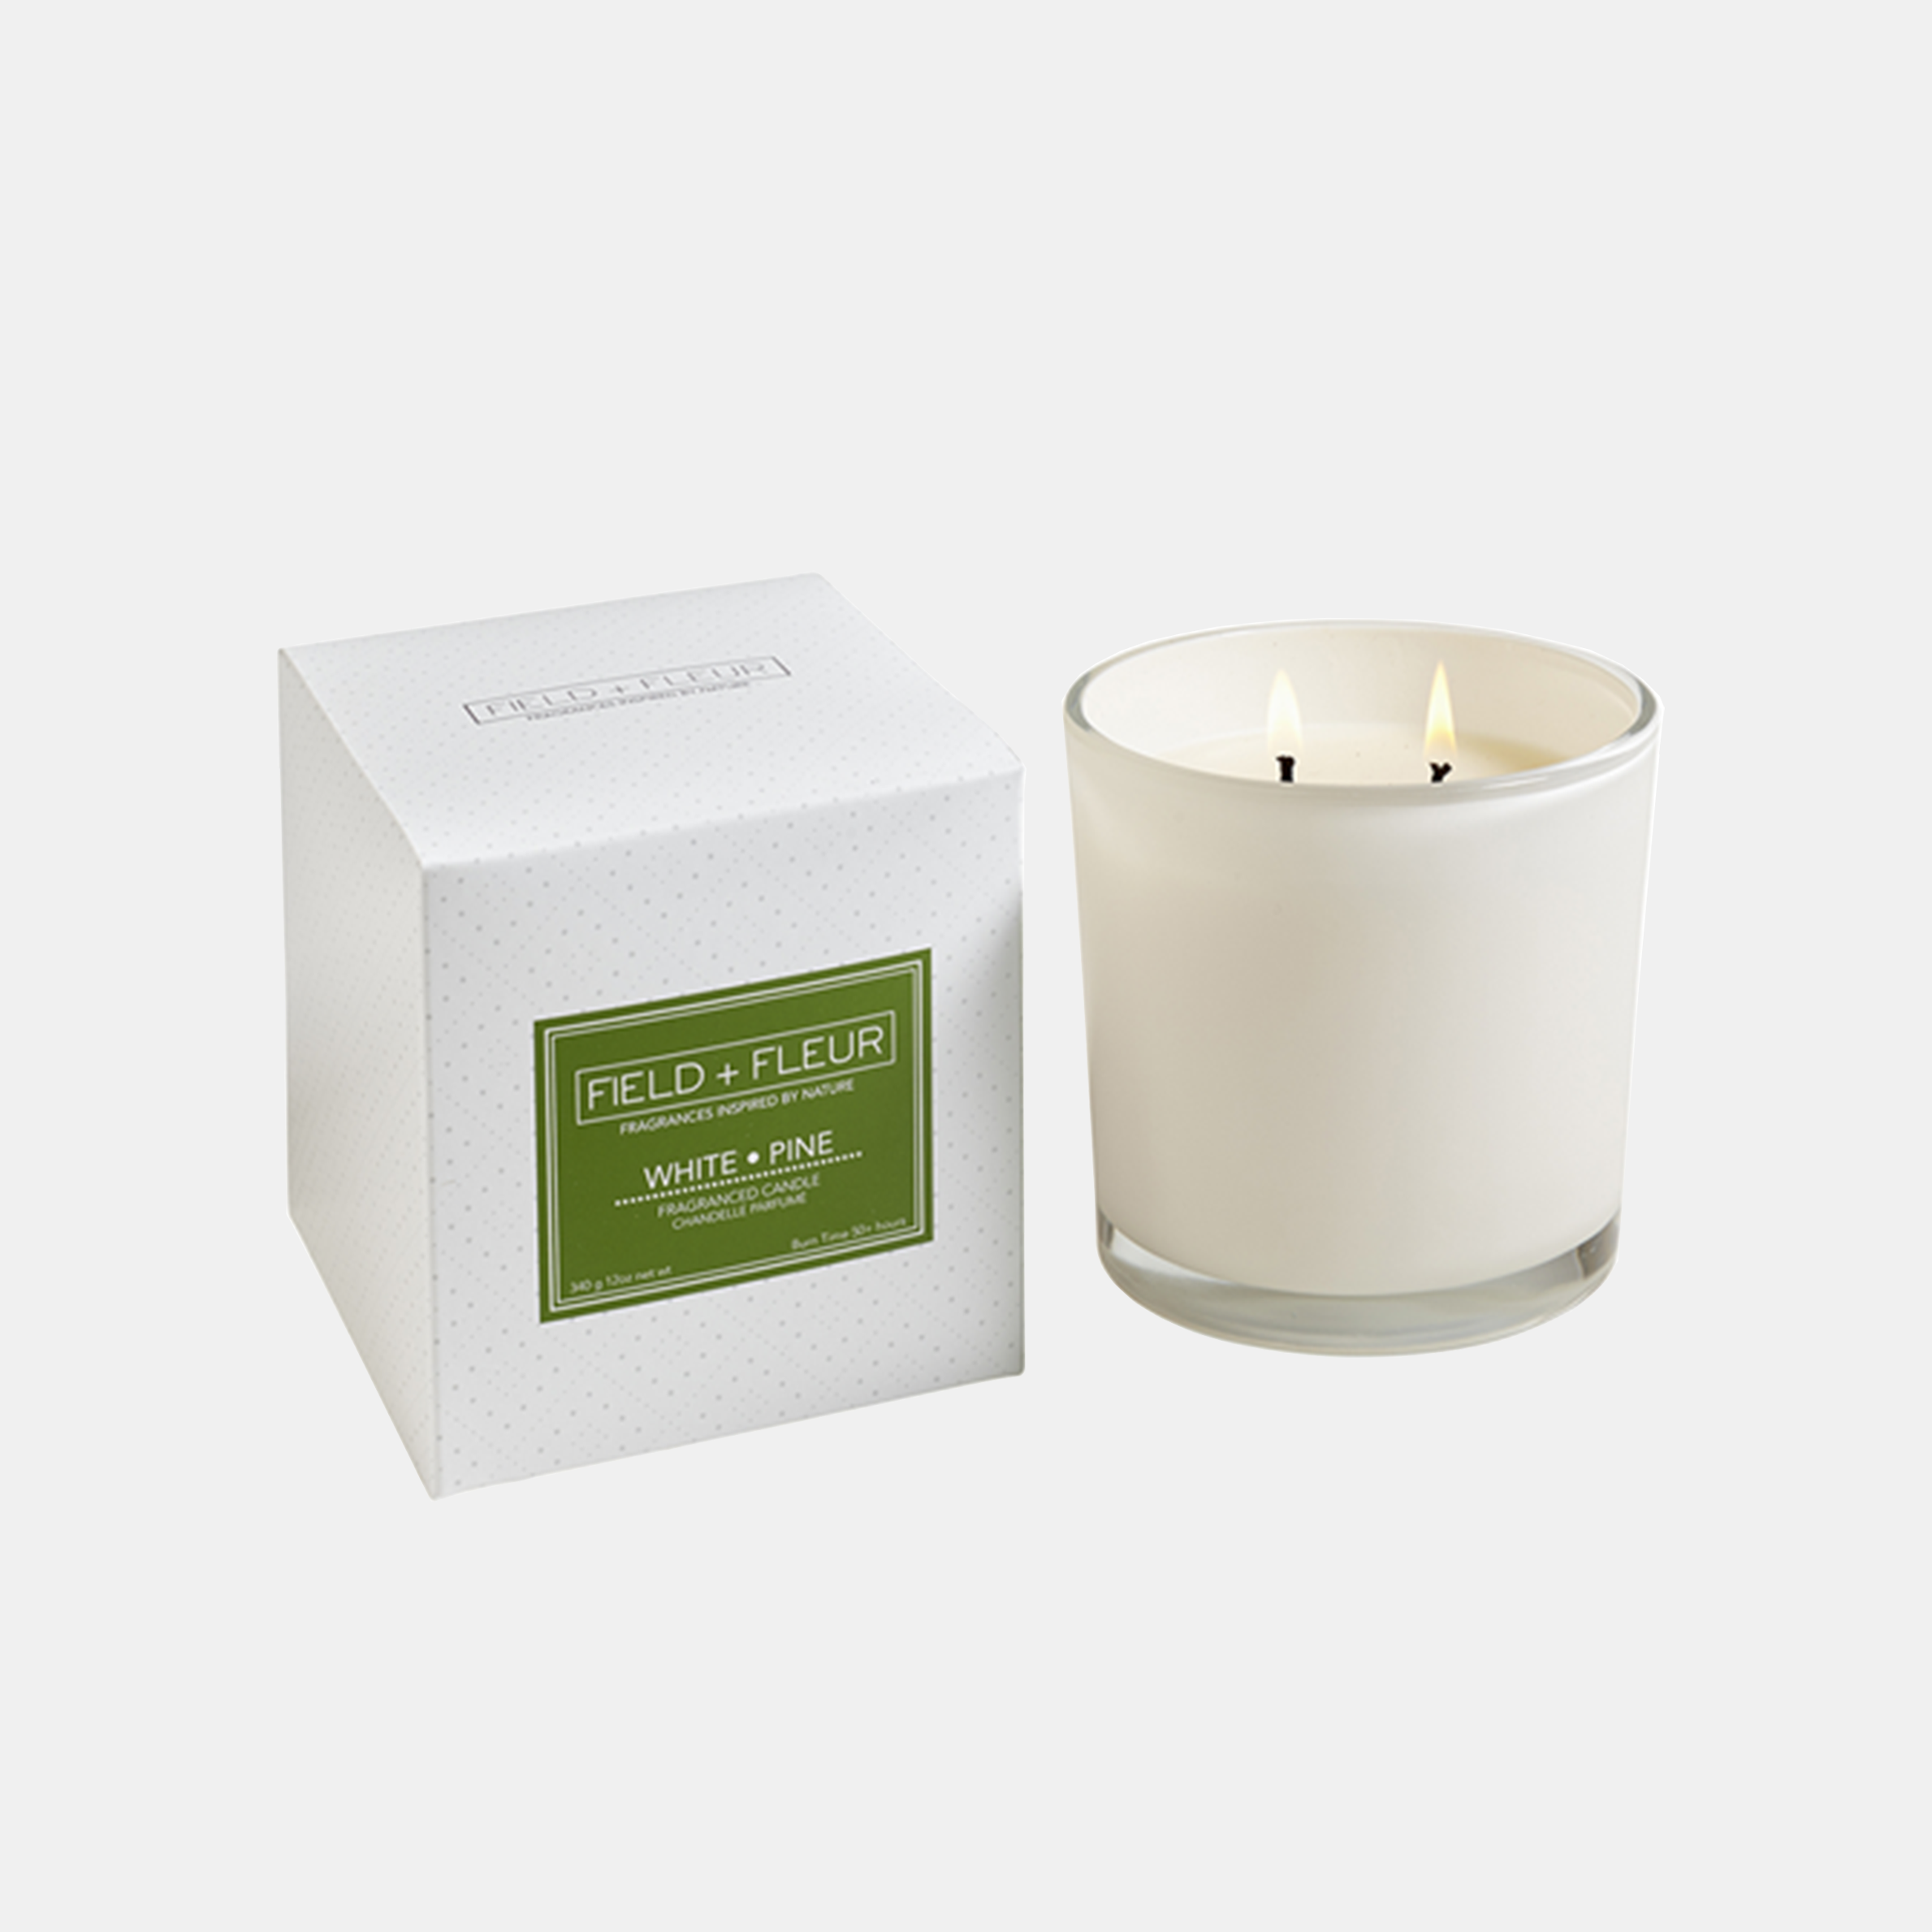 White Pine Candle  Two-wick candle in white glass jar. 12 oz. SKU14495HLN